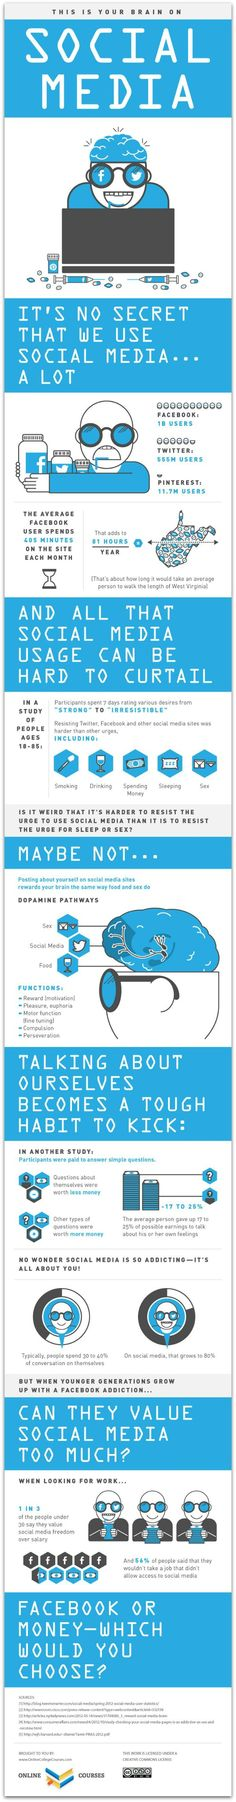 The Science behind our obsession: Infographic: Why social media is so addictive